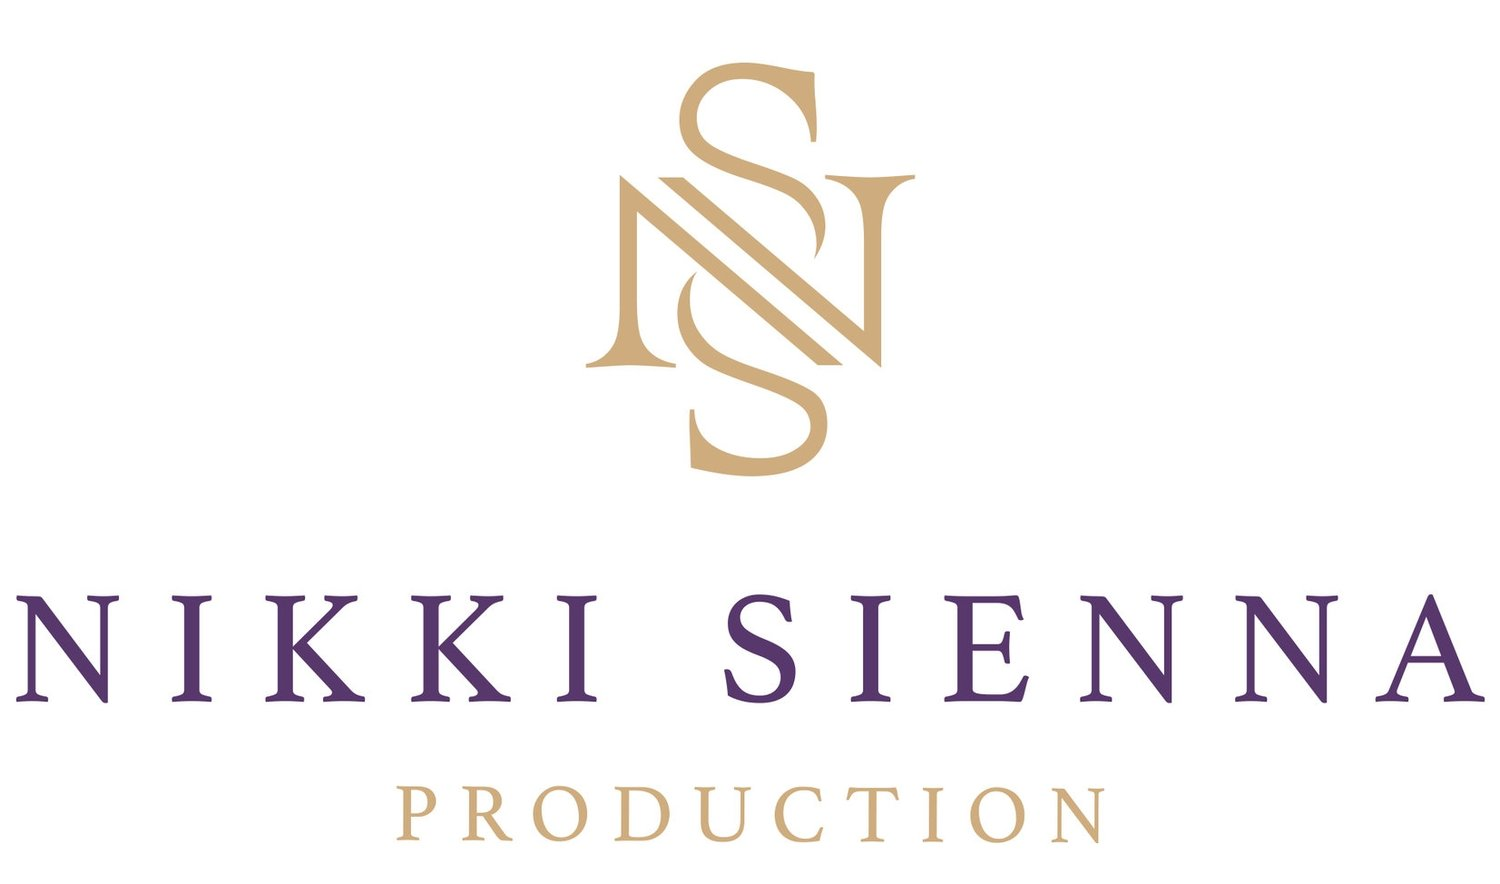 Nikki Sienna Production